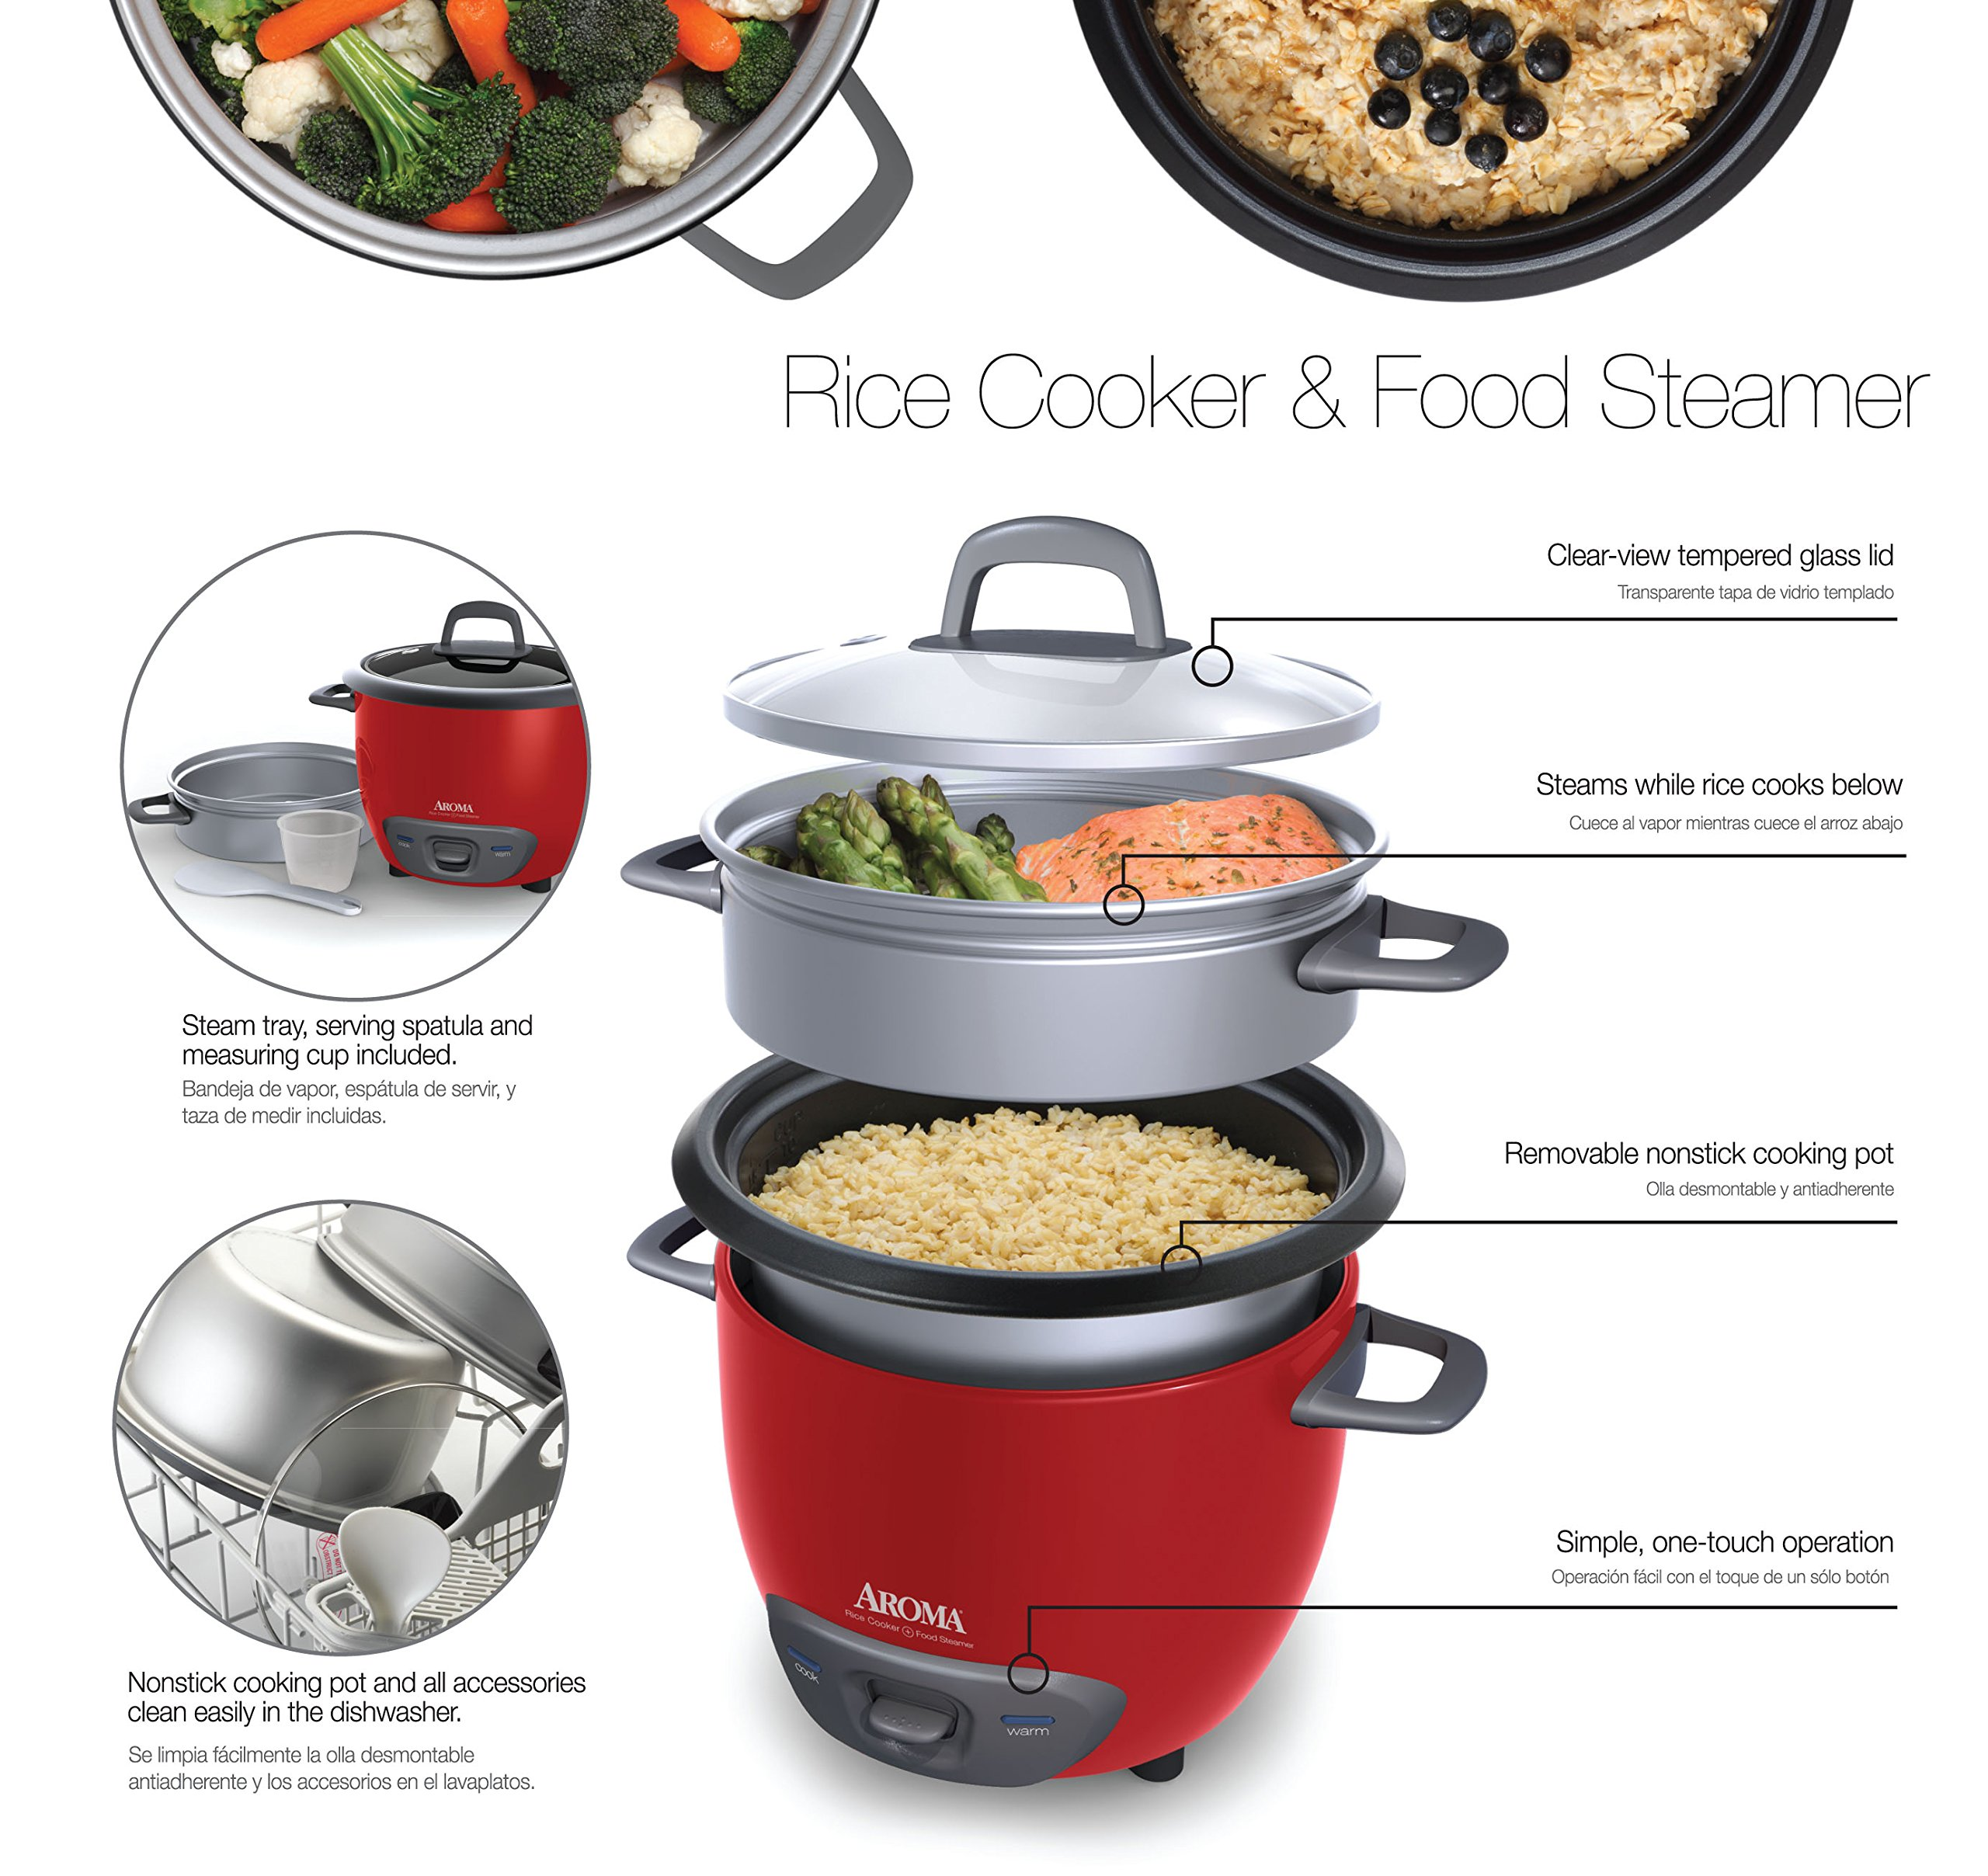 Aroma Housewares 6-Cup (Cooked) (3-Cup UNCOOKED) Pot Style Rice Cooker and Food Steamer by Aroma Housewares (Image #8)